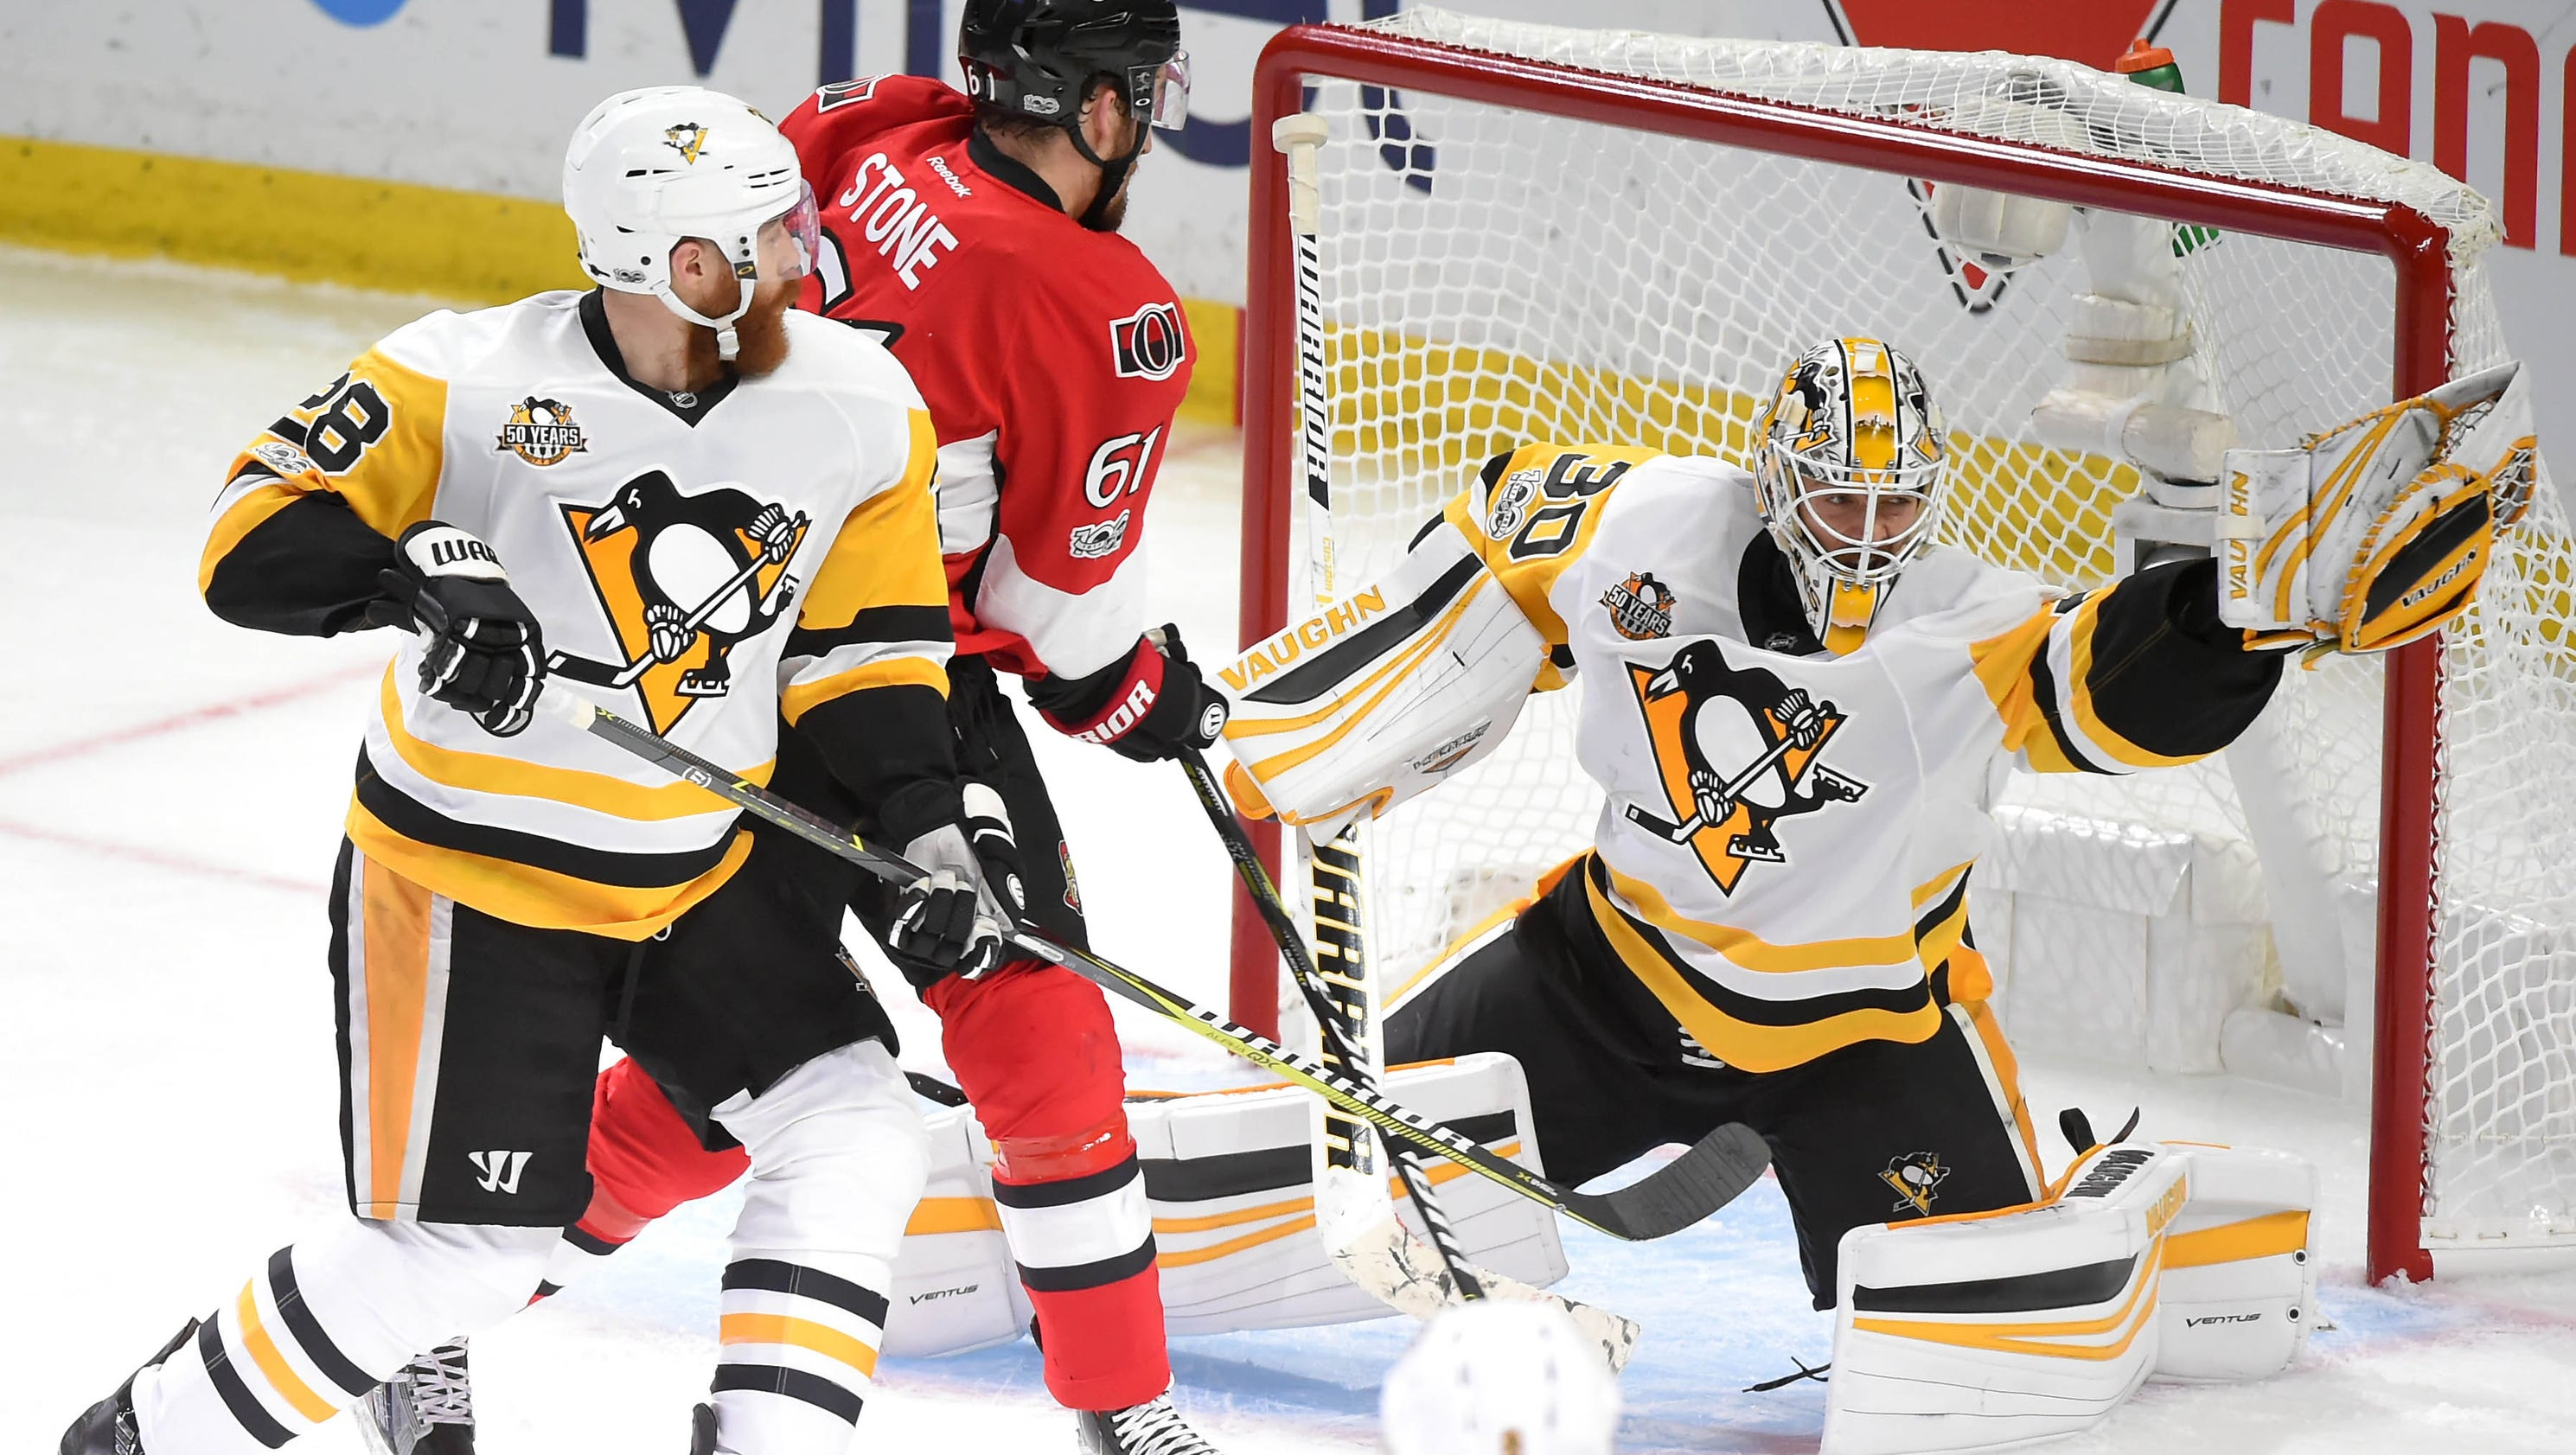 636307992841863159-usp-nhl--stanley-cup-playoffs-pittsburgh-penguins